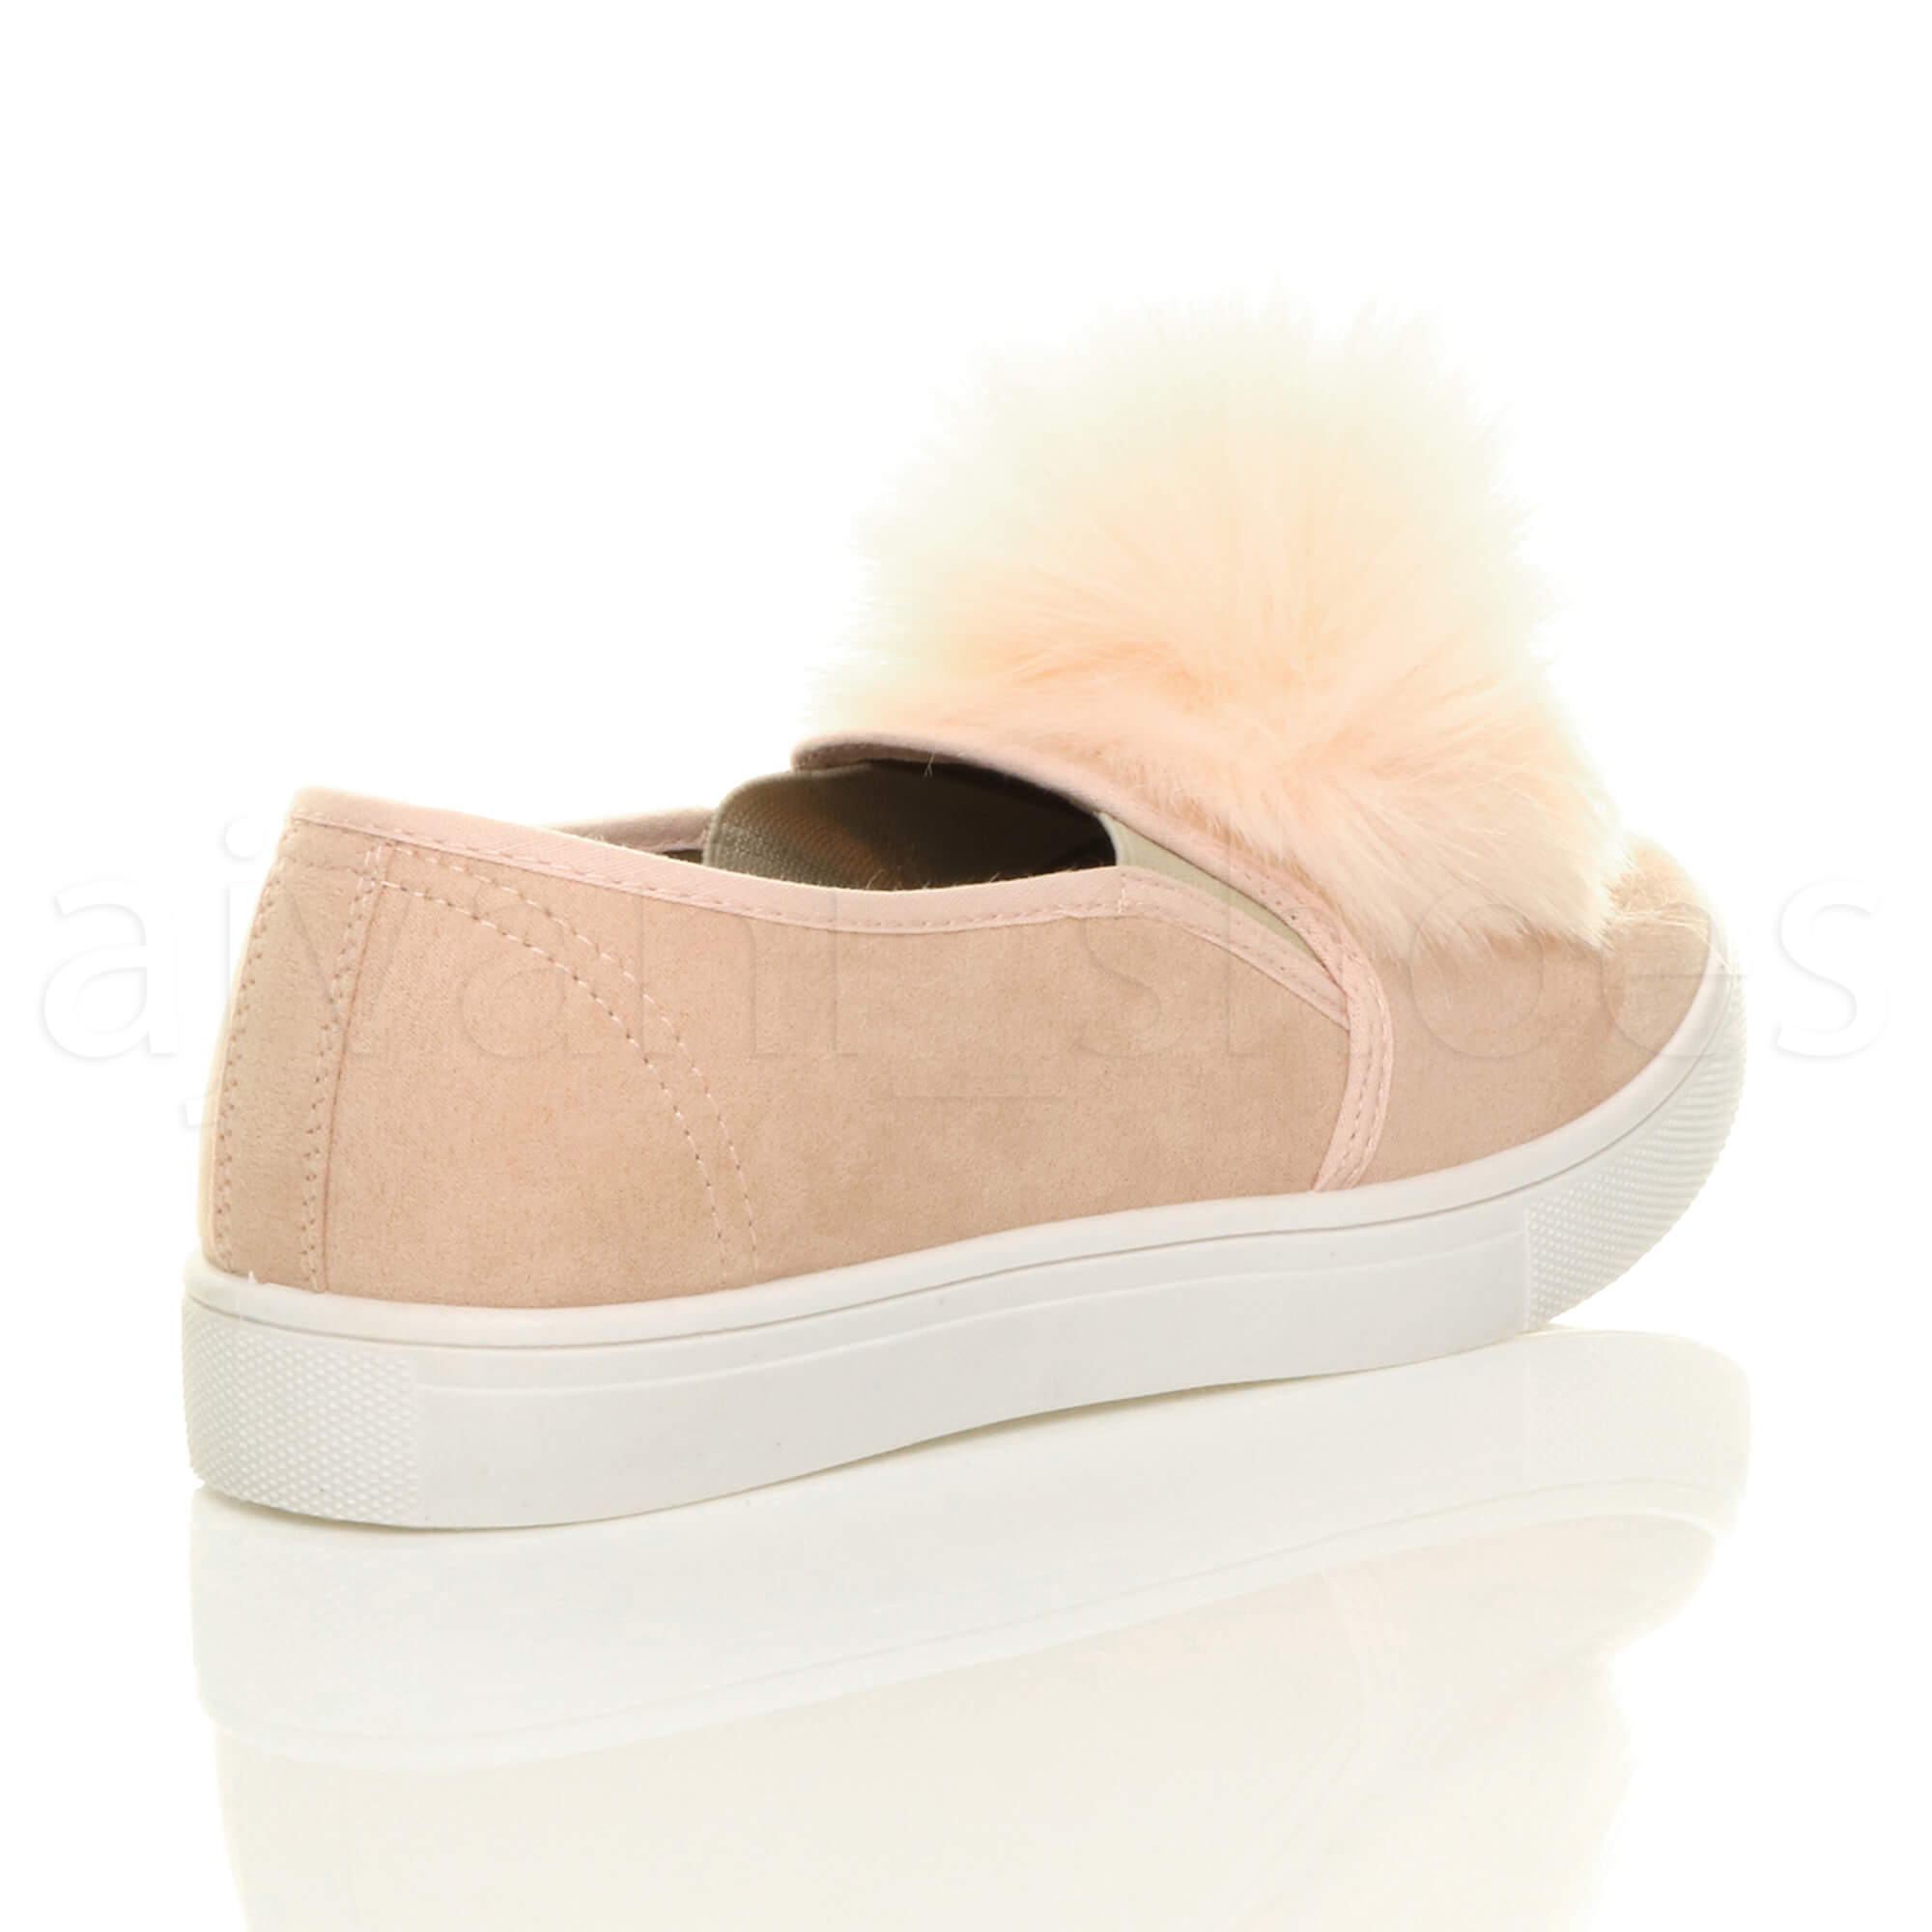 WOMENS-LADIES-FLAT-POM-POM-SLIP-ON-TRAINER-SNEAKER-PUMPS-LOAFERS-SHOES-SIZE